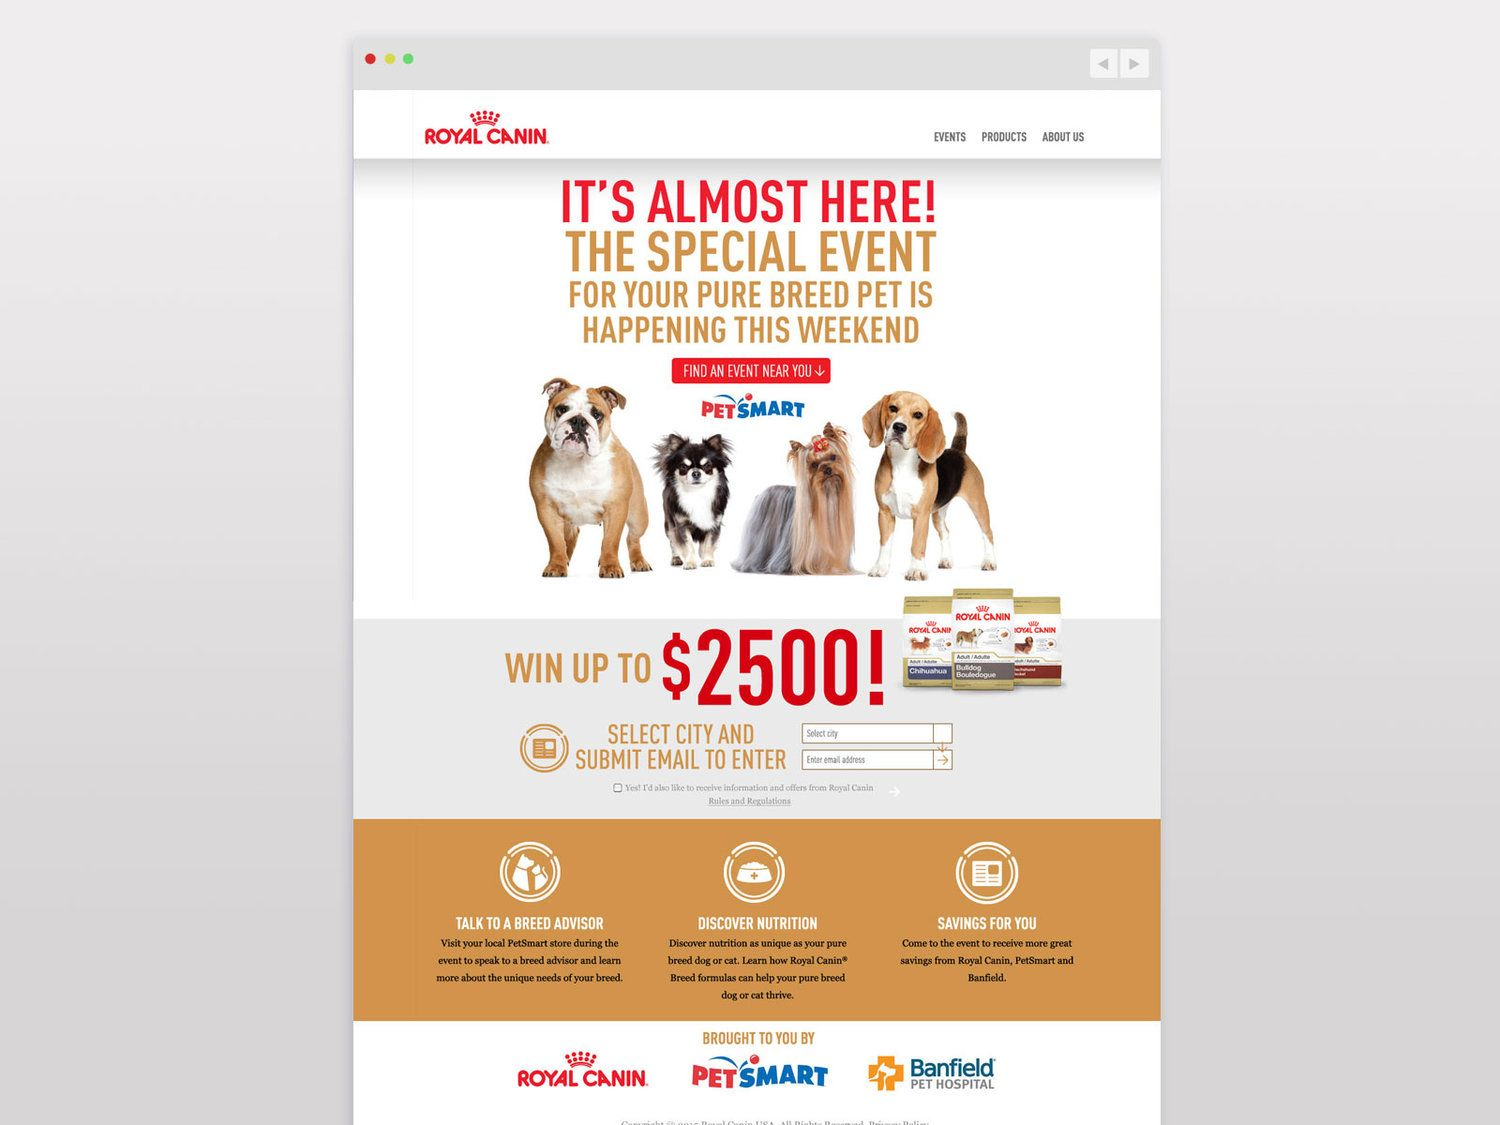 Image Result For Royal Canin Email Design Royal Canin Email